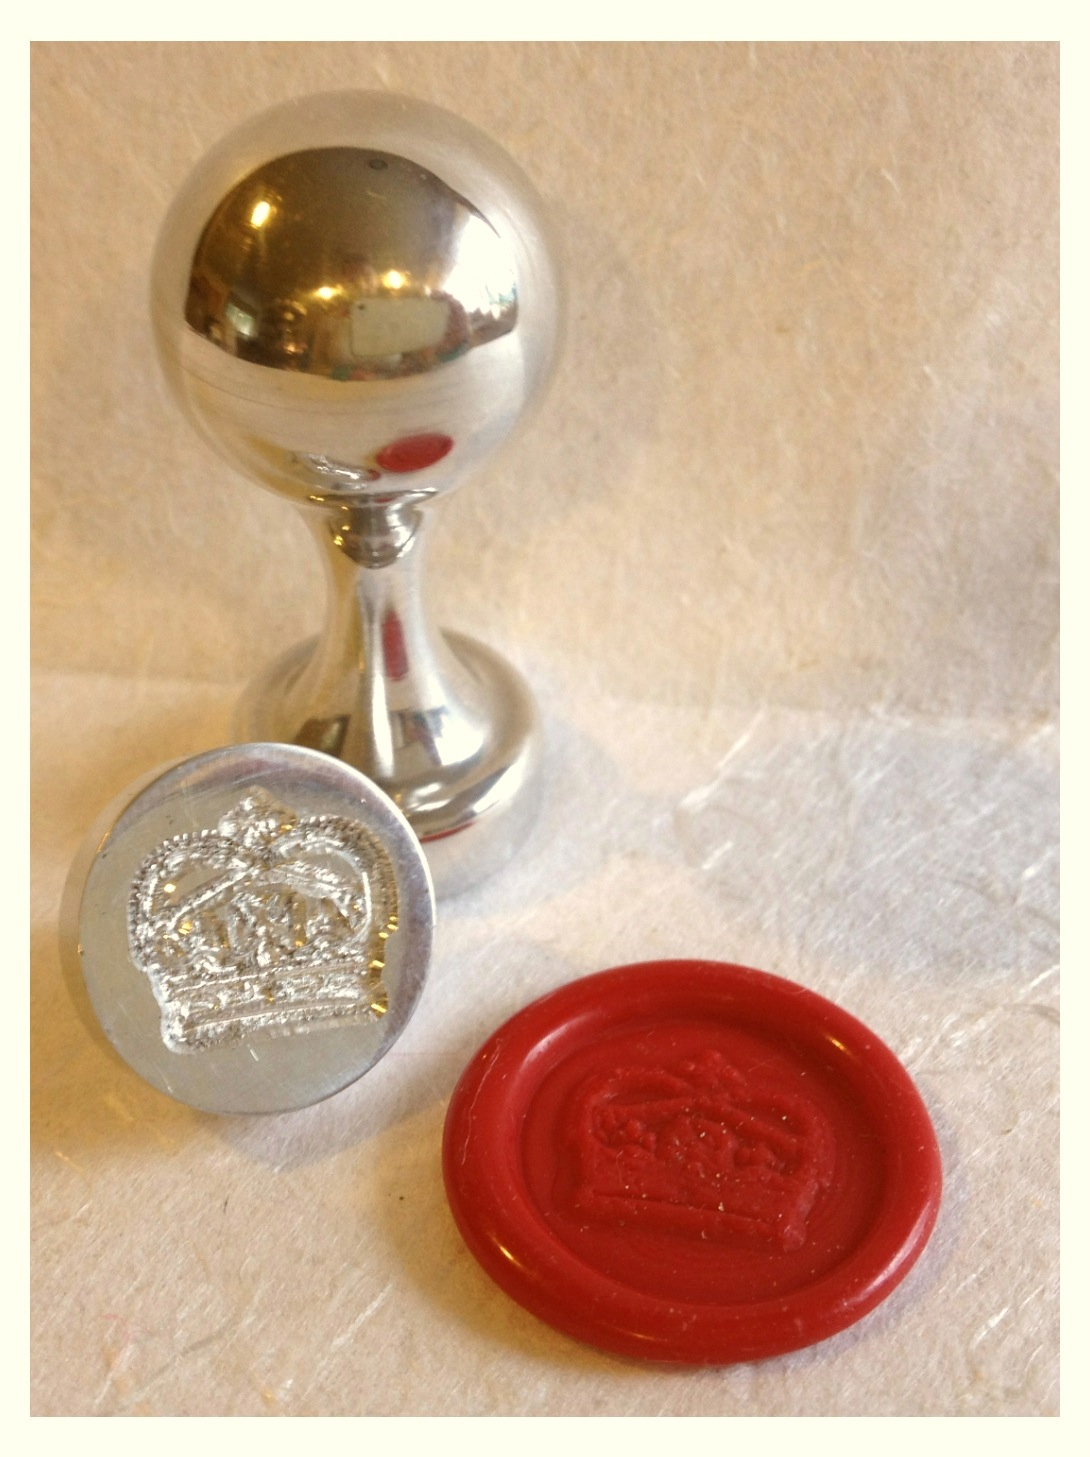 The Queen's Crown wax seal